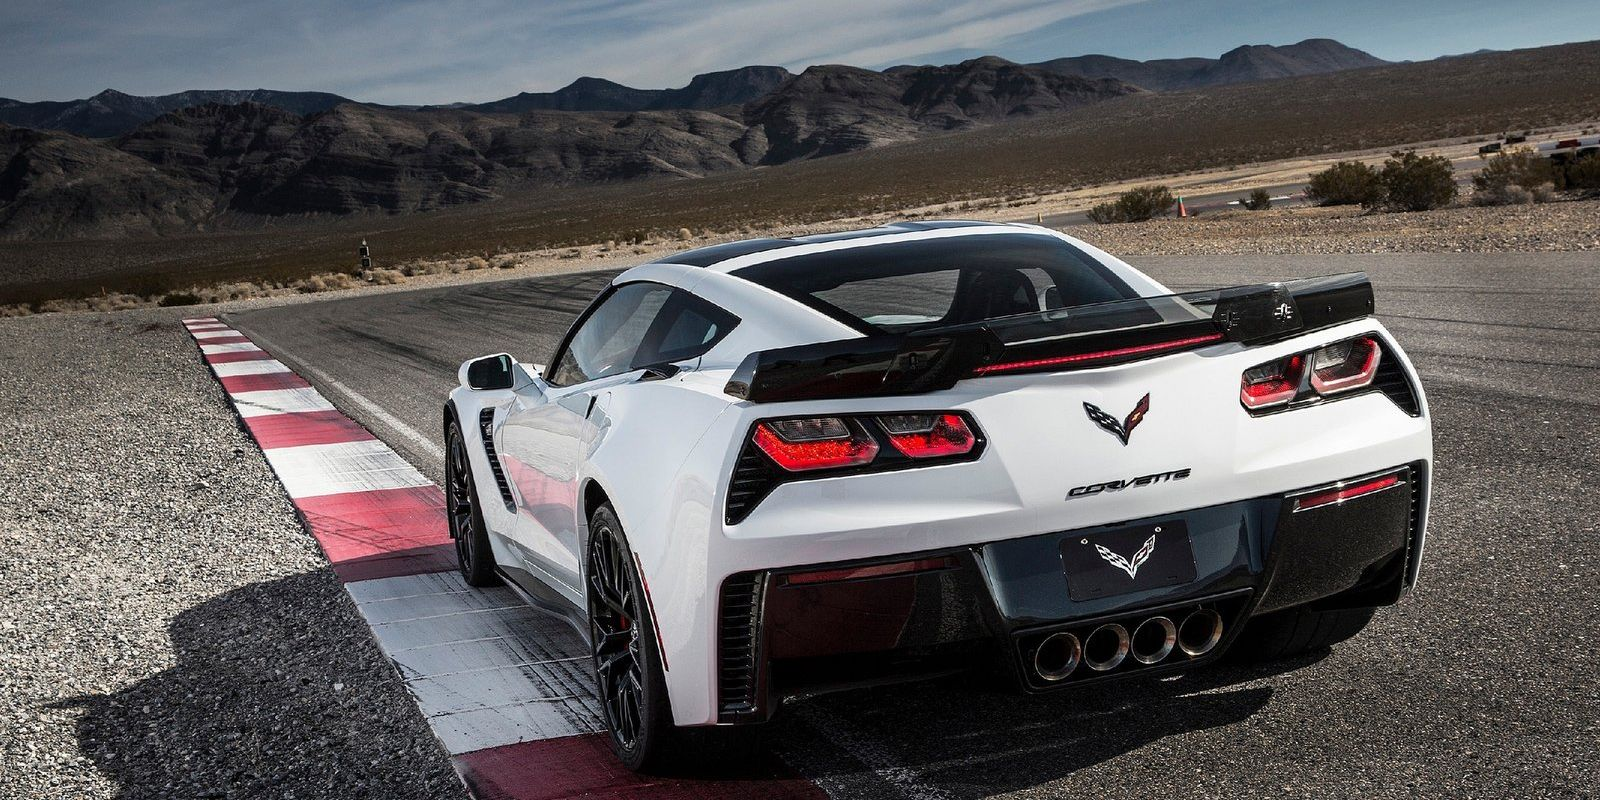 """<p>If you have access to a track and intend to take advantage of it regularly, buying <a href=""""http://www.roadandtrack.com/new-cars/first-drives/reviews/a22861/2015-chevrolet-corvette-z06-first-drive-review/"""">a faster version of the new Corvette</a> makes sense. If you don't, 650 horsepower is quite a lot of power. Good luck resisting the temptation to use it once you know you have it. The cops won't understand that excuse.</p>"""